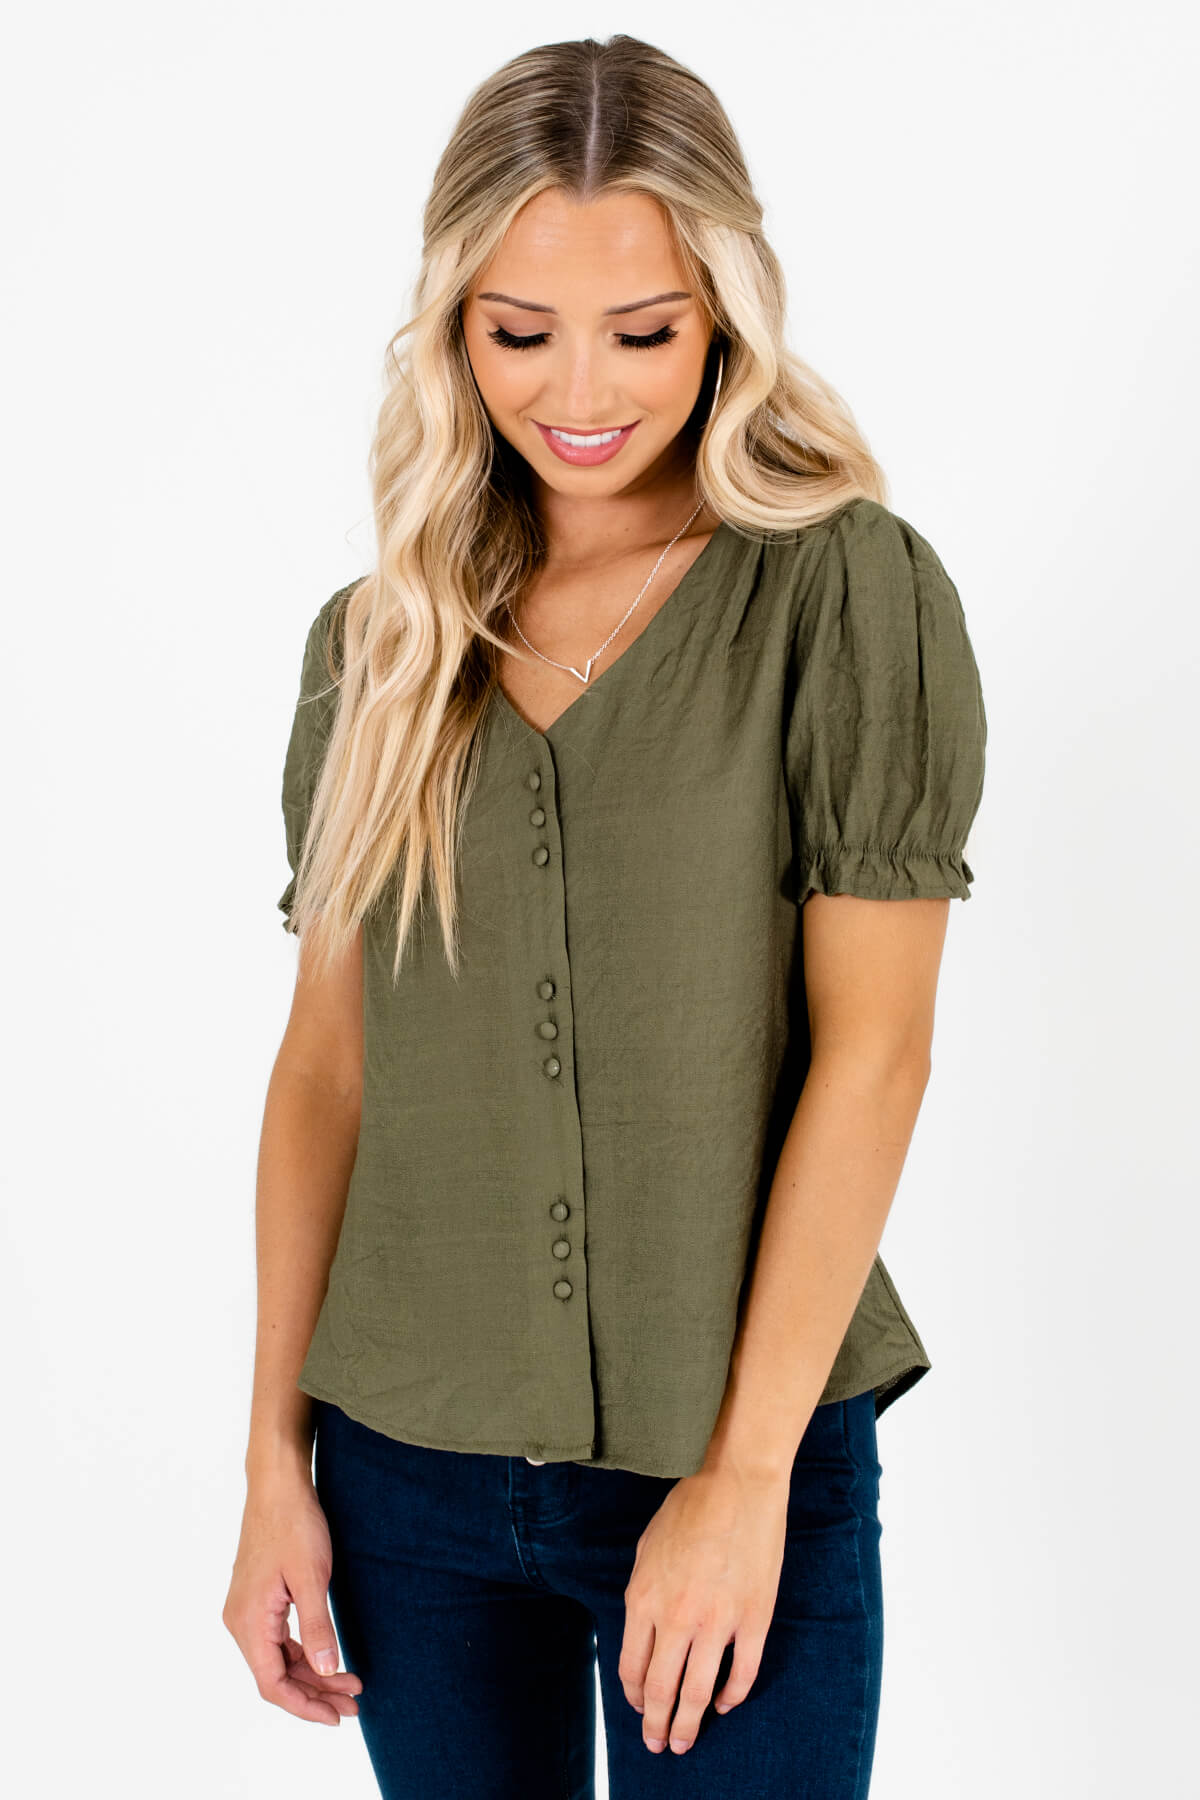 Olive Green Button-Up Front Boutique Tops for Women